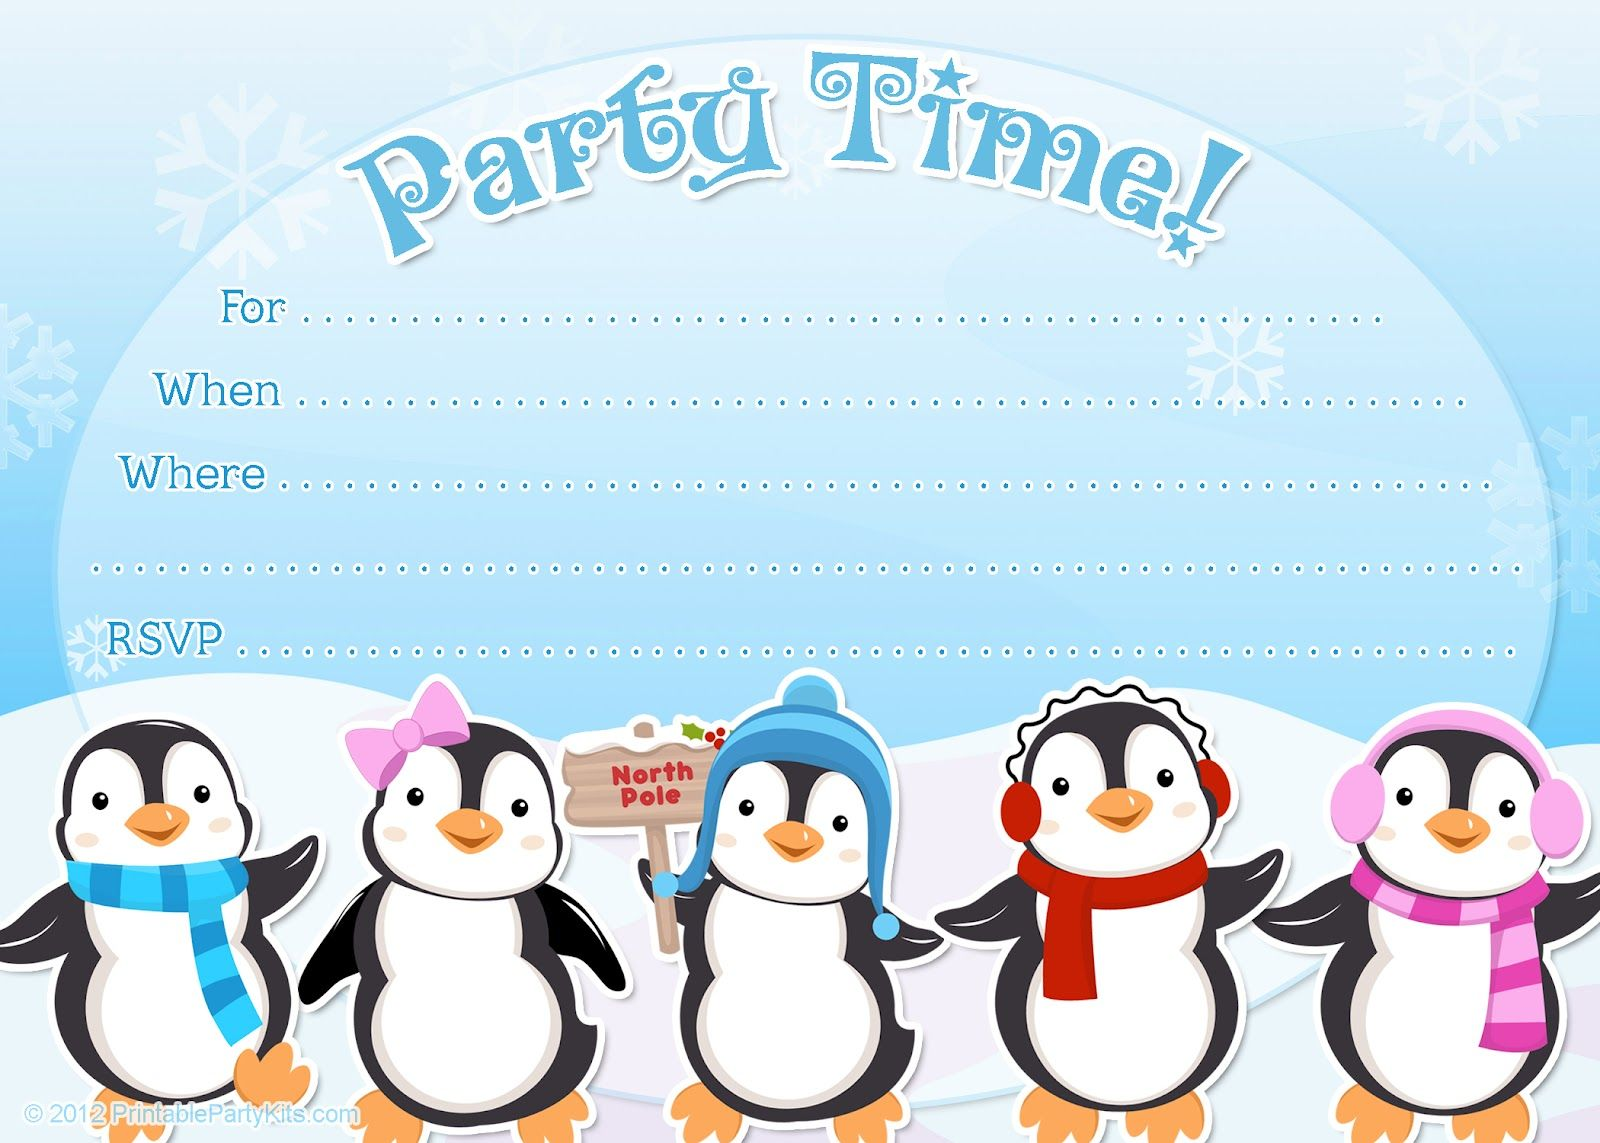 Celebrate clipart winter. Free printable penguin or